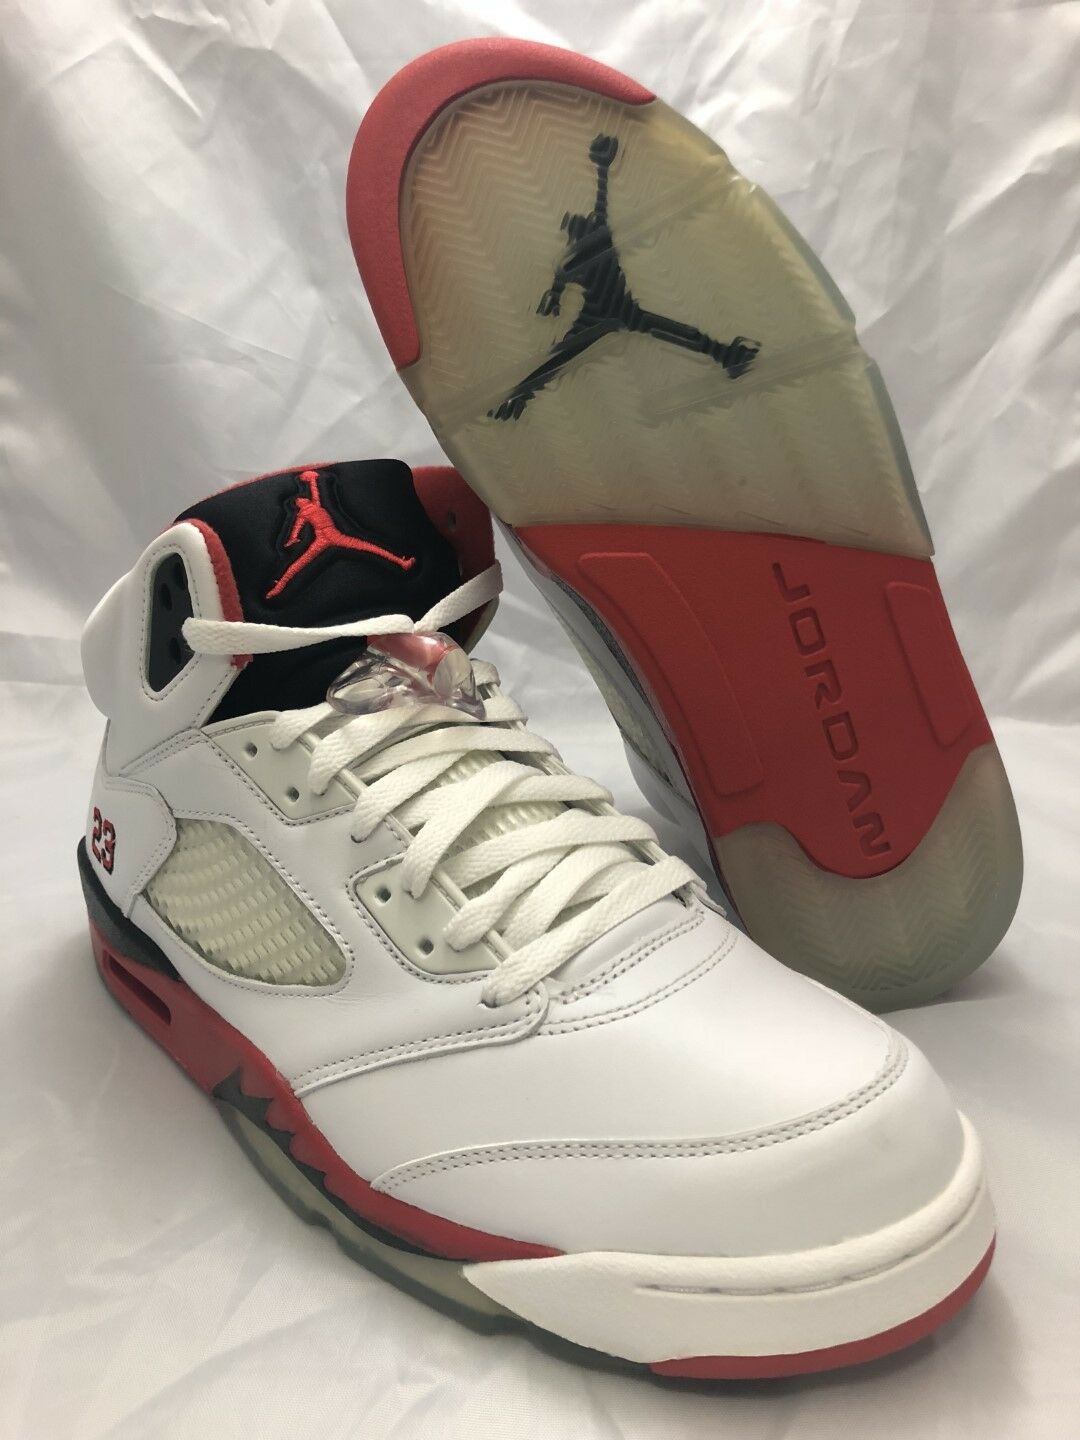 NEW DS Nike Air Jordan V (5) Black Retro Fire Red White Black (5) 2006 Size 11 136027 162 659fae